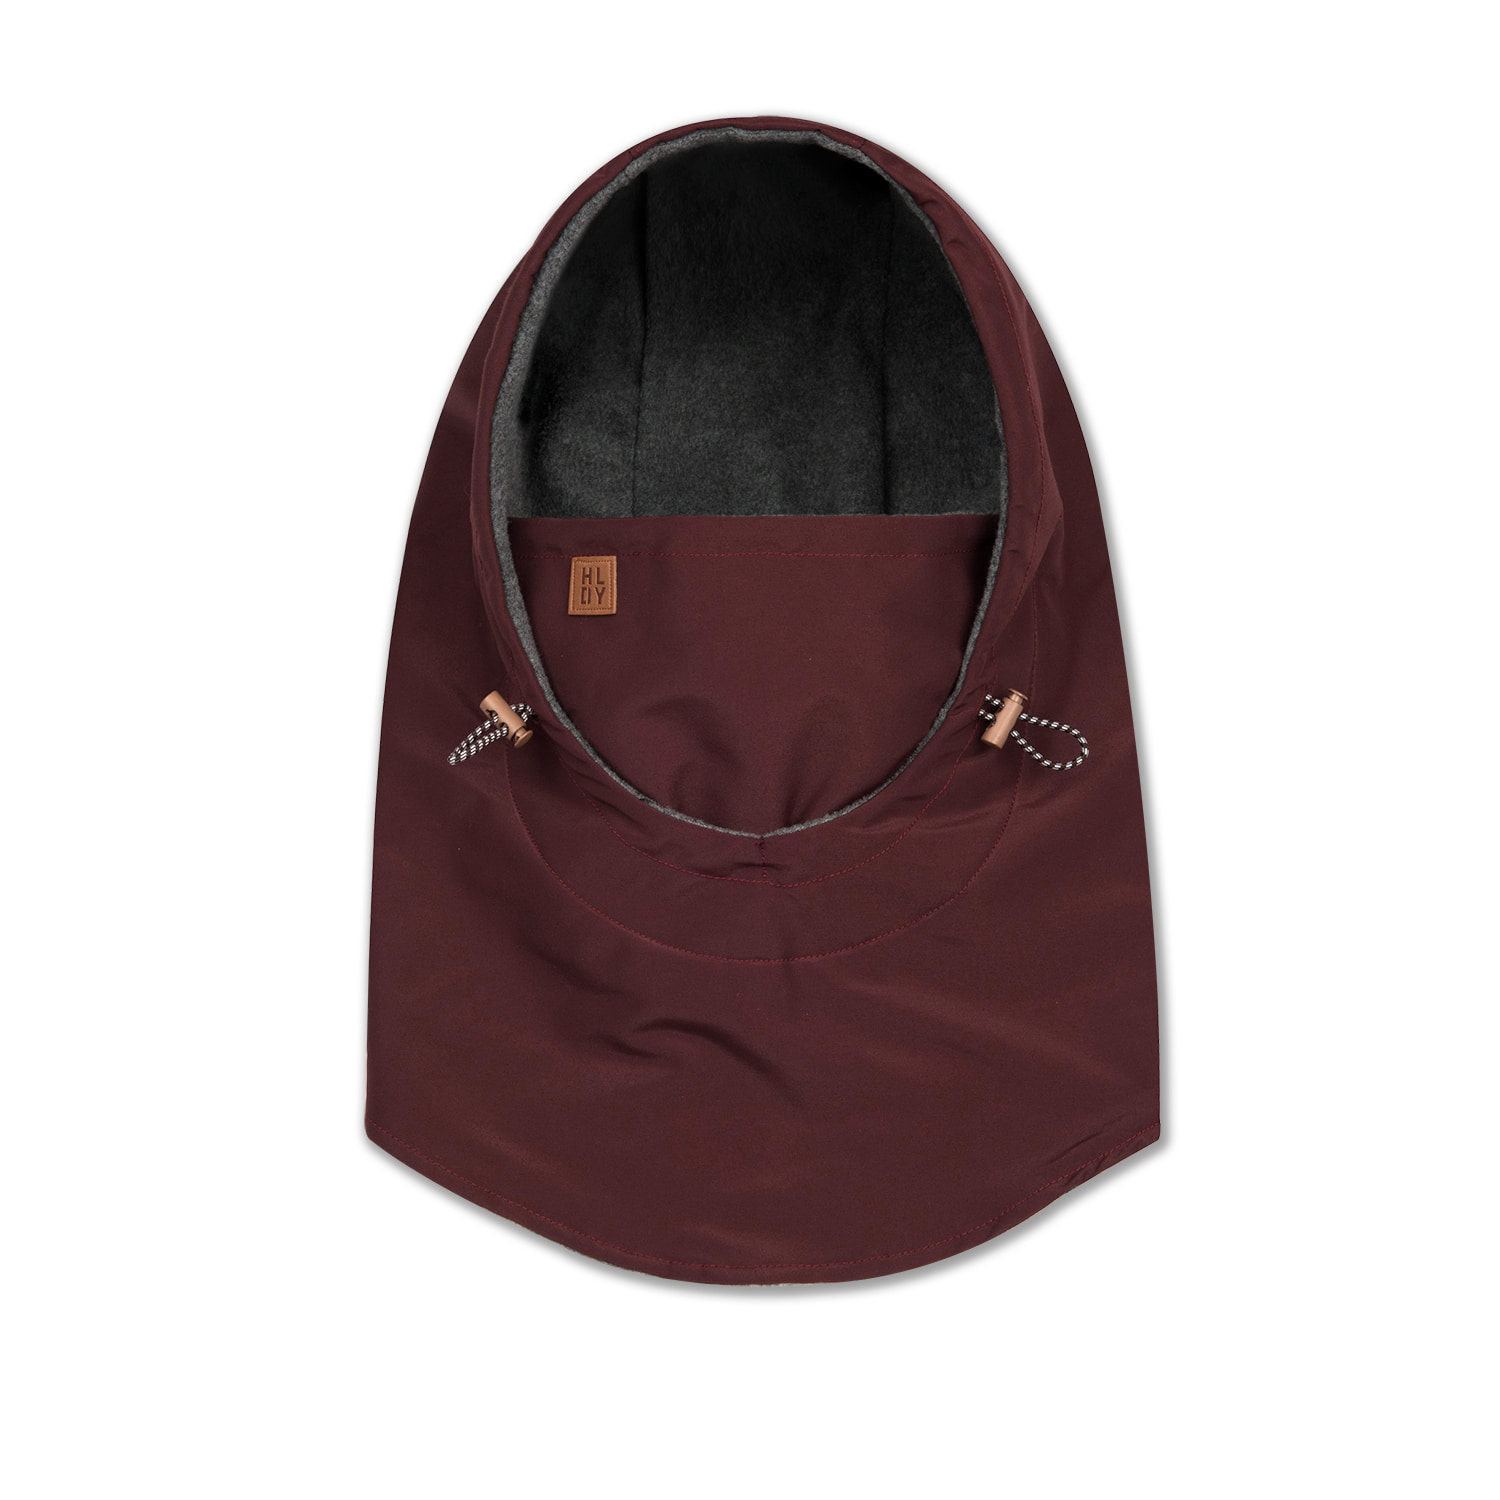 HELMET hood warmer[waterproof,방수] - burgundy